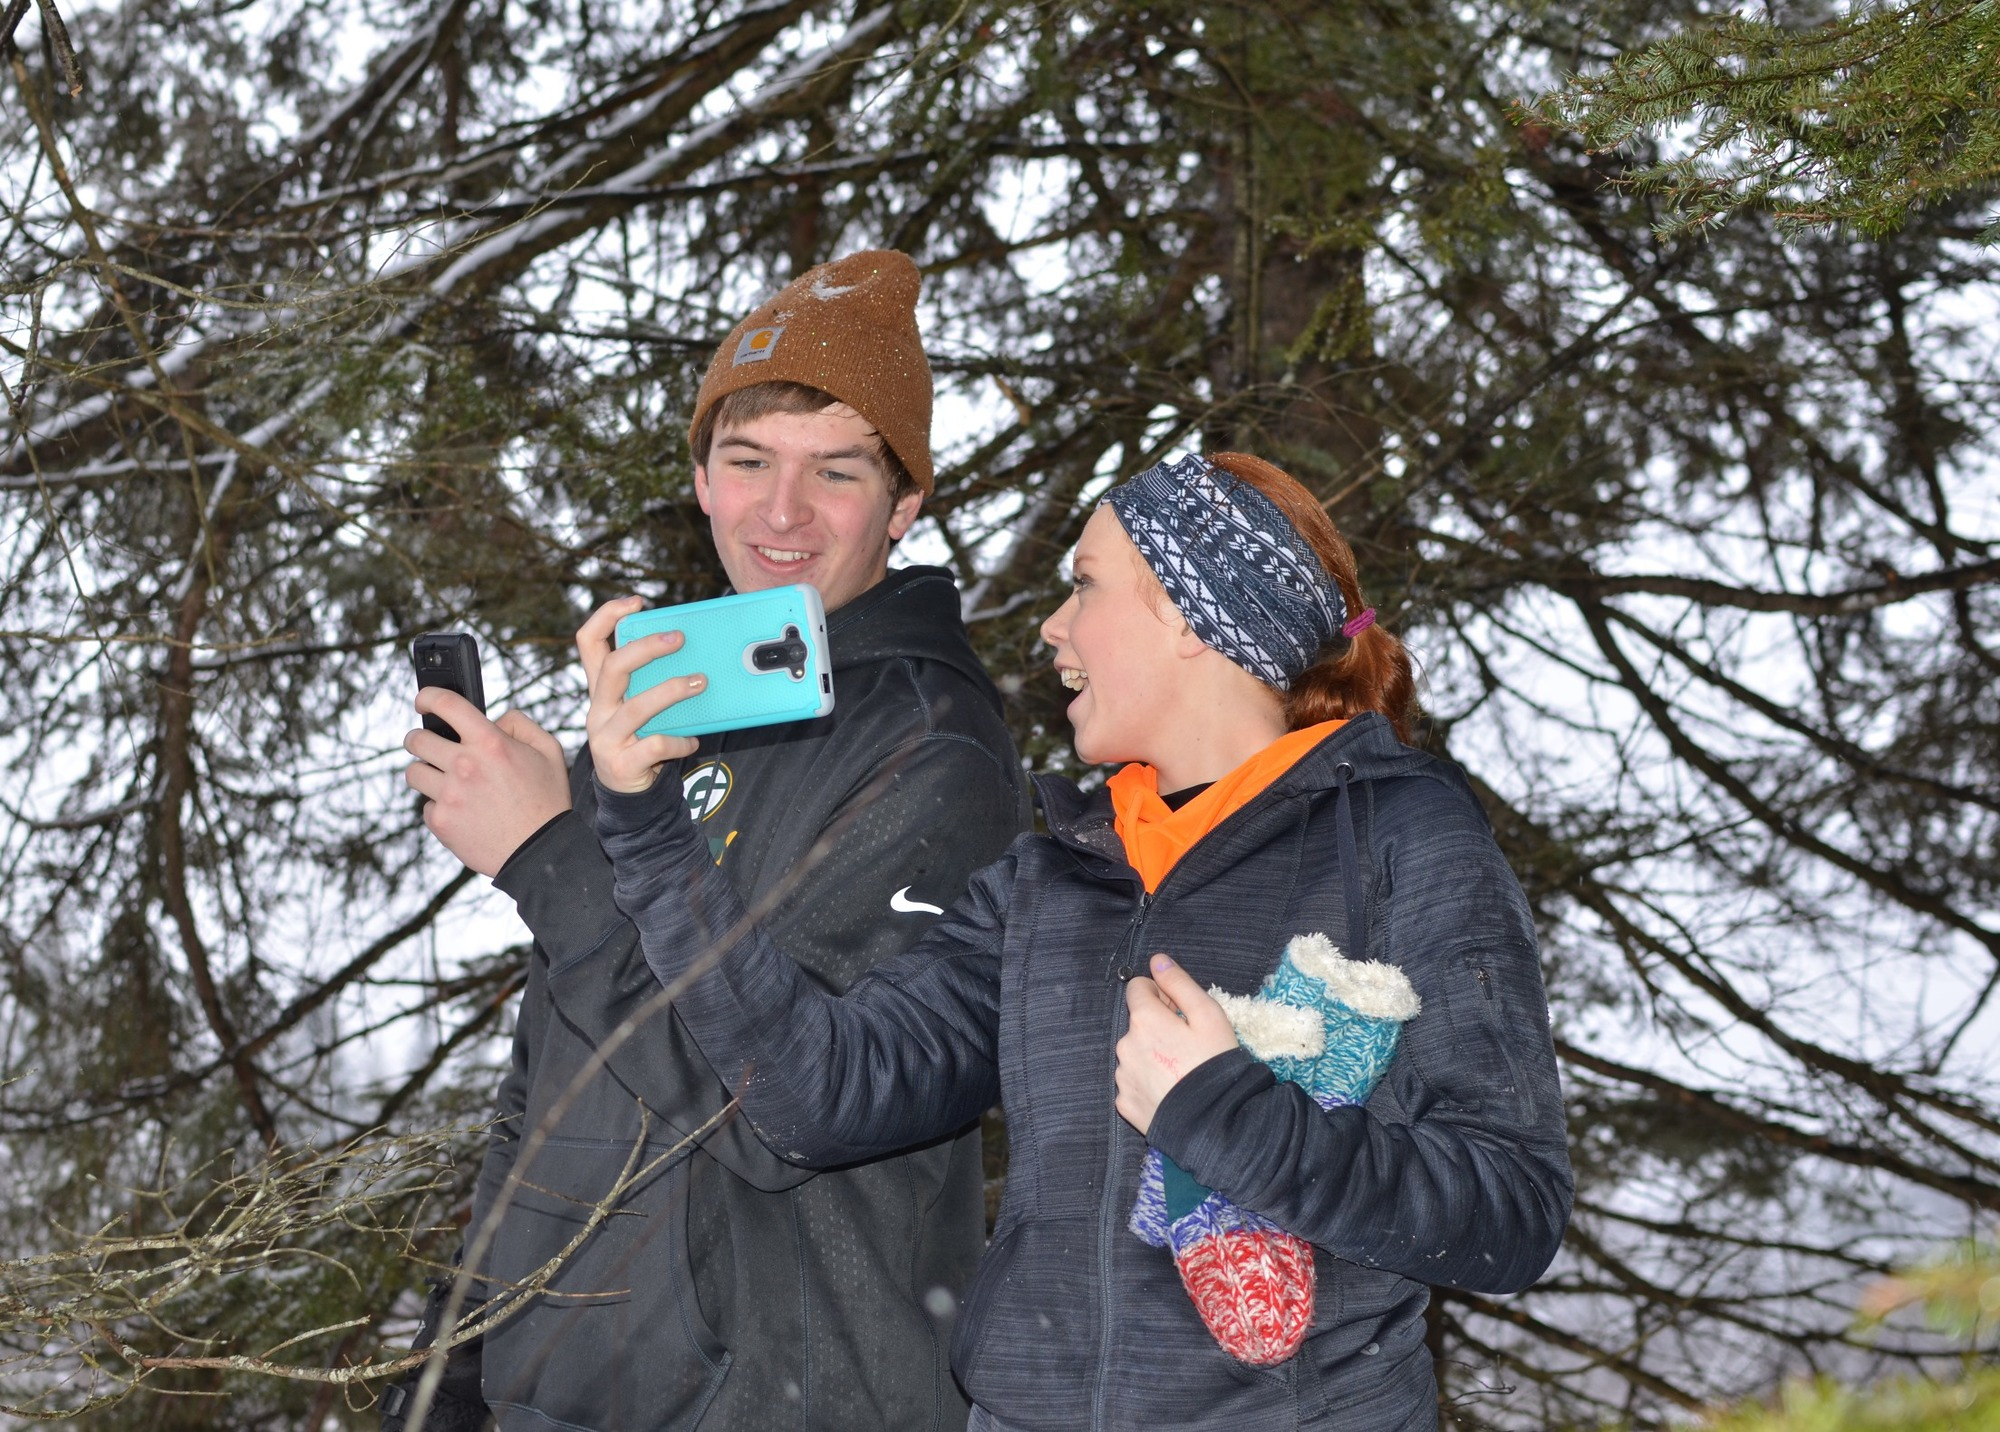 North Dickinson County Schools sophomores Jared Miller, 16, of Sagola and Juliann Wickman, 15, of Felch look at photos on their cellphones.